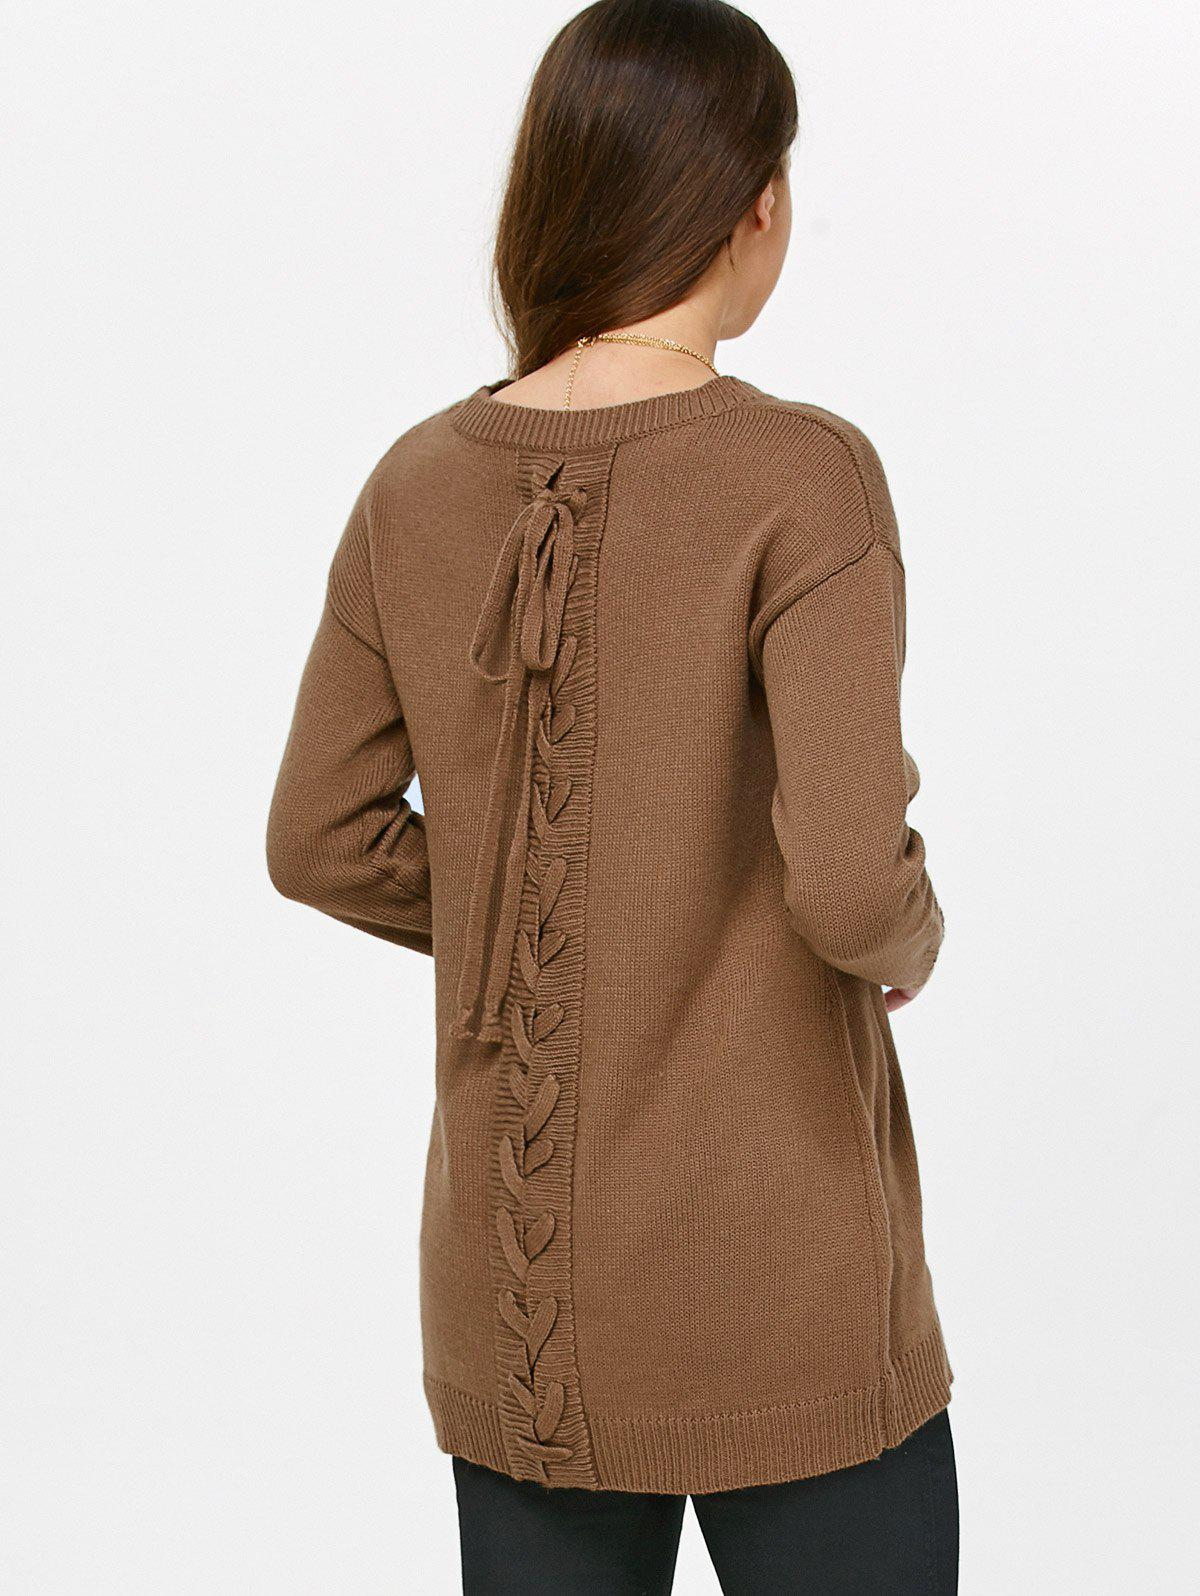 Drop Shoulder Lace-Up Sweater lace up hoop deor drop shoulder sweatshirt